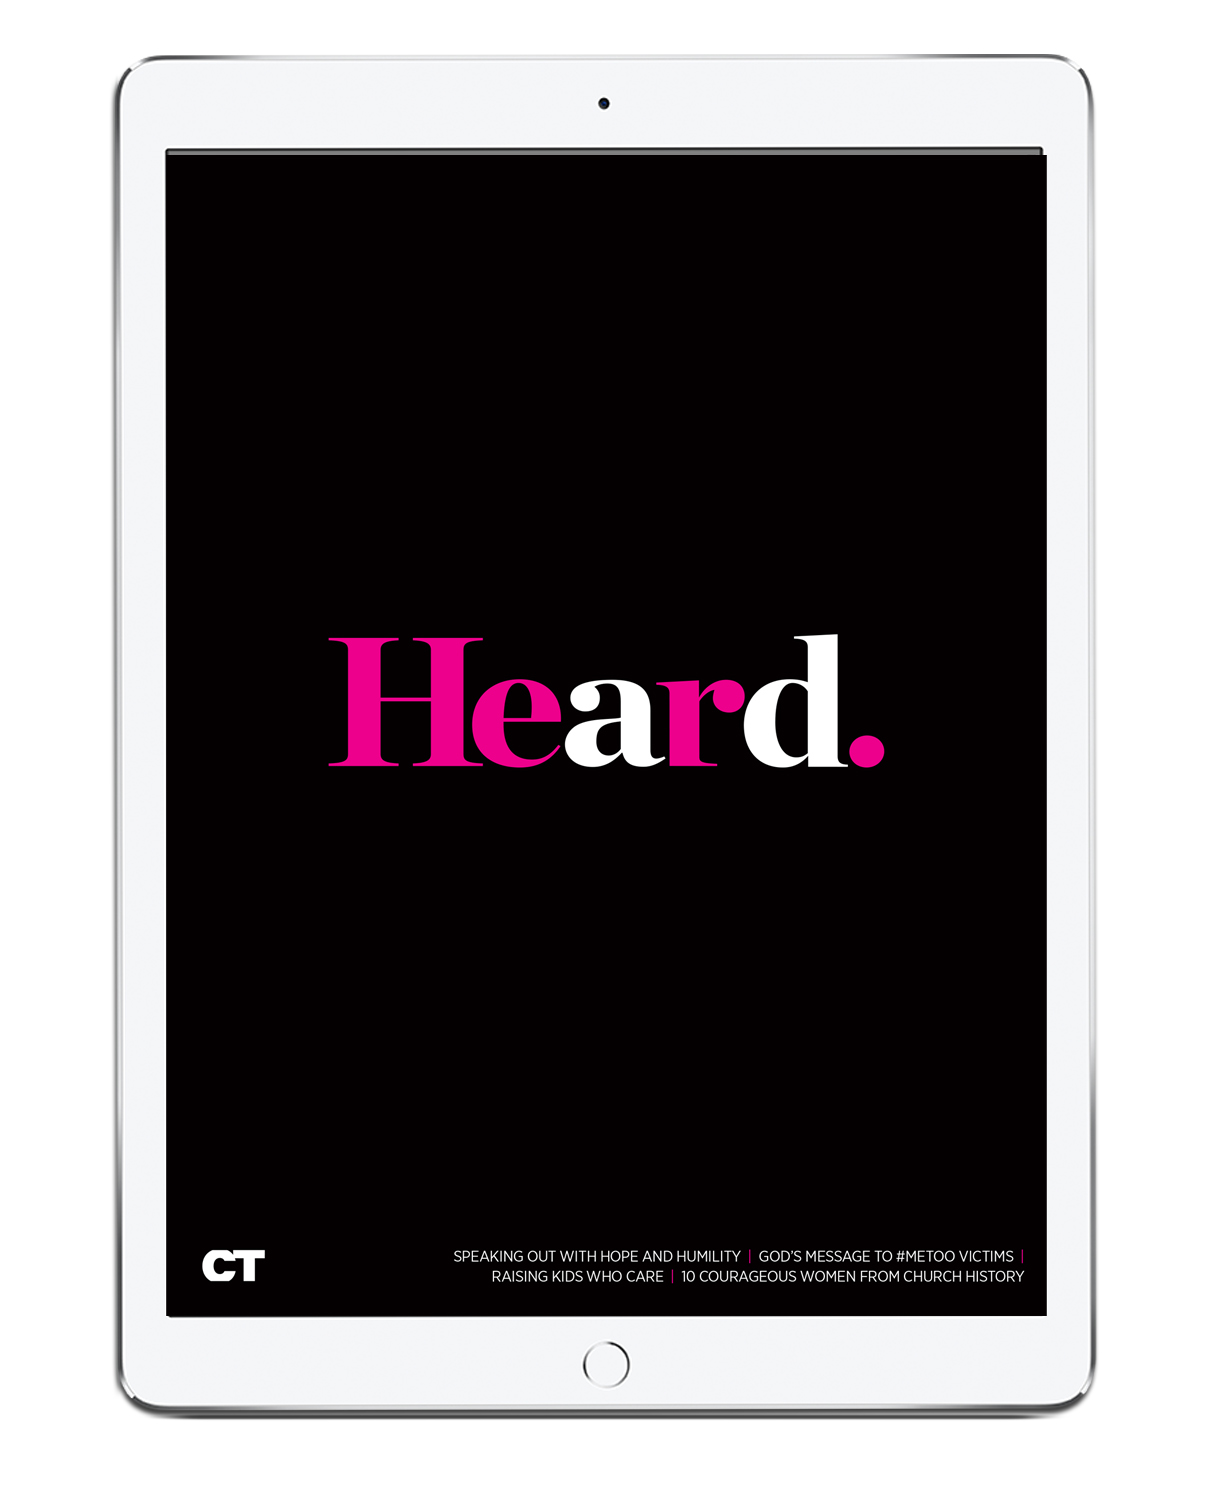 Heard: A Special Issue from CT Women